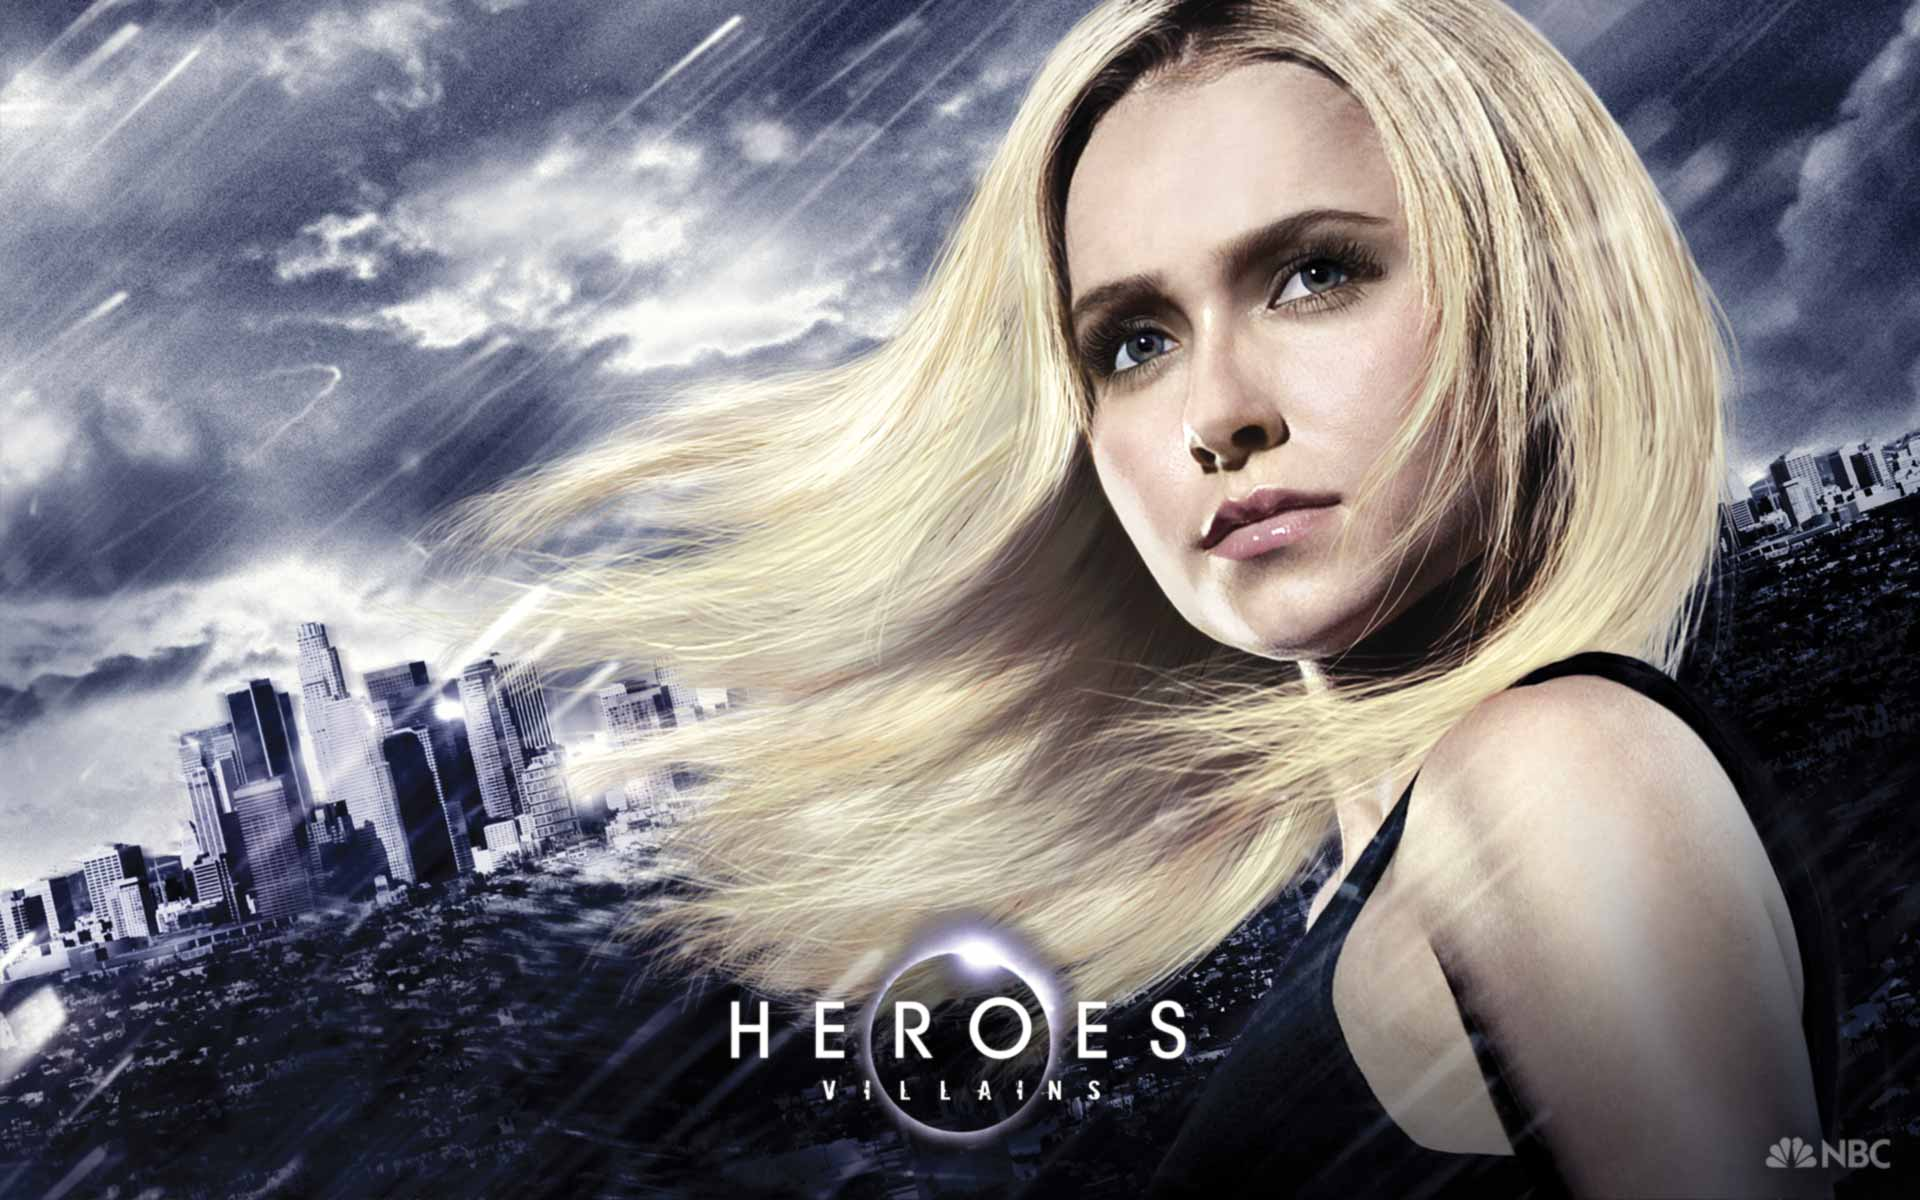 heroes new poster trailer interviews from emmy parties